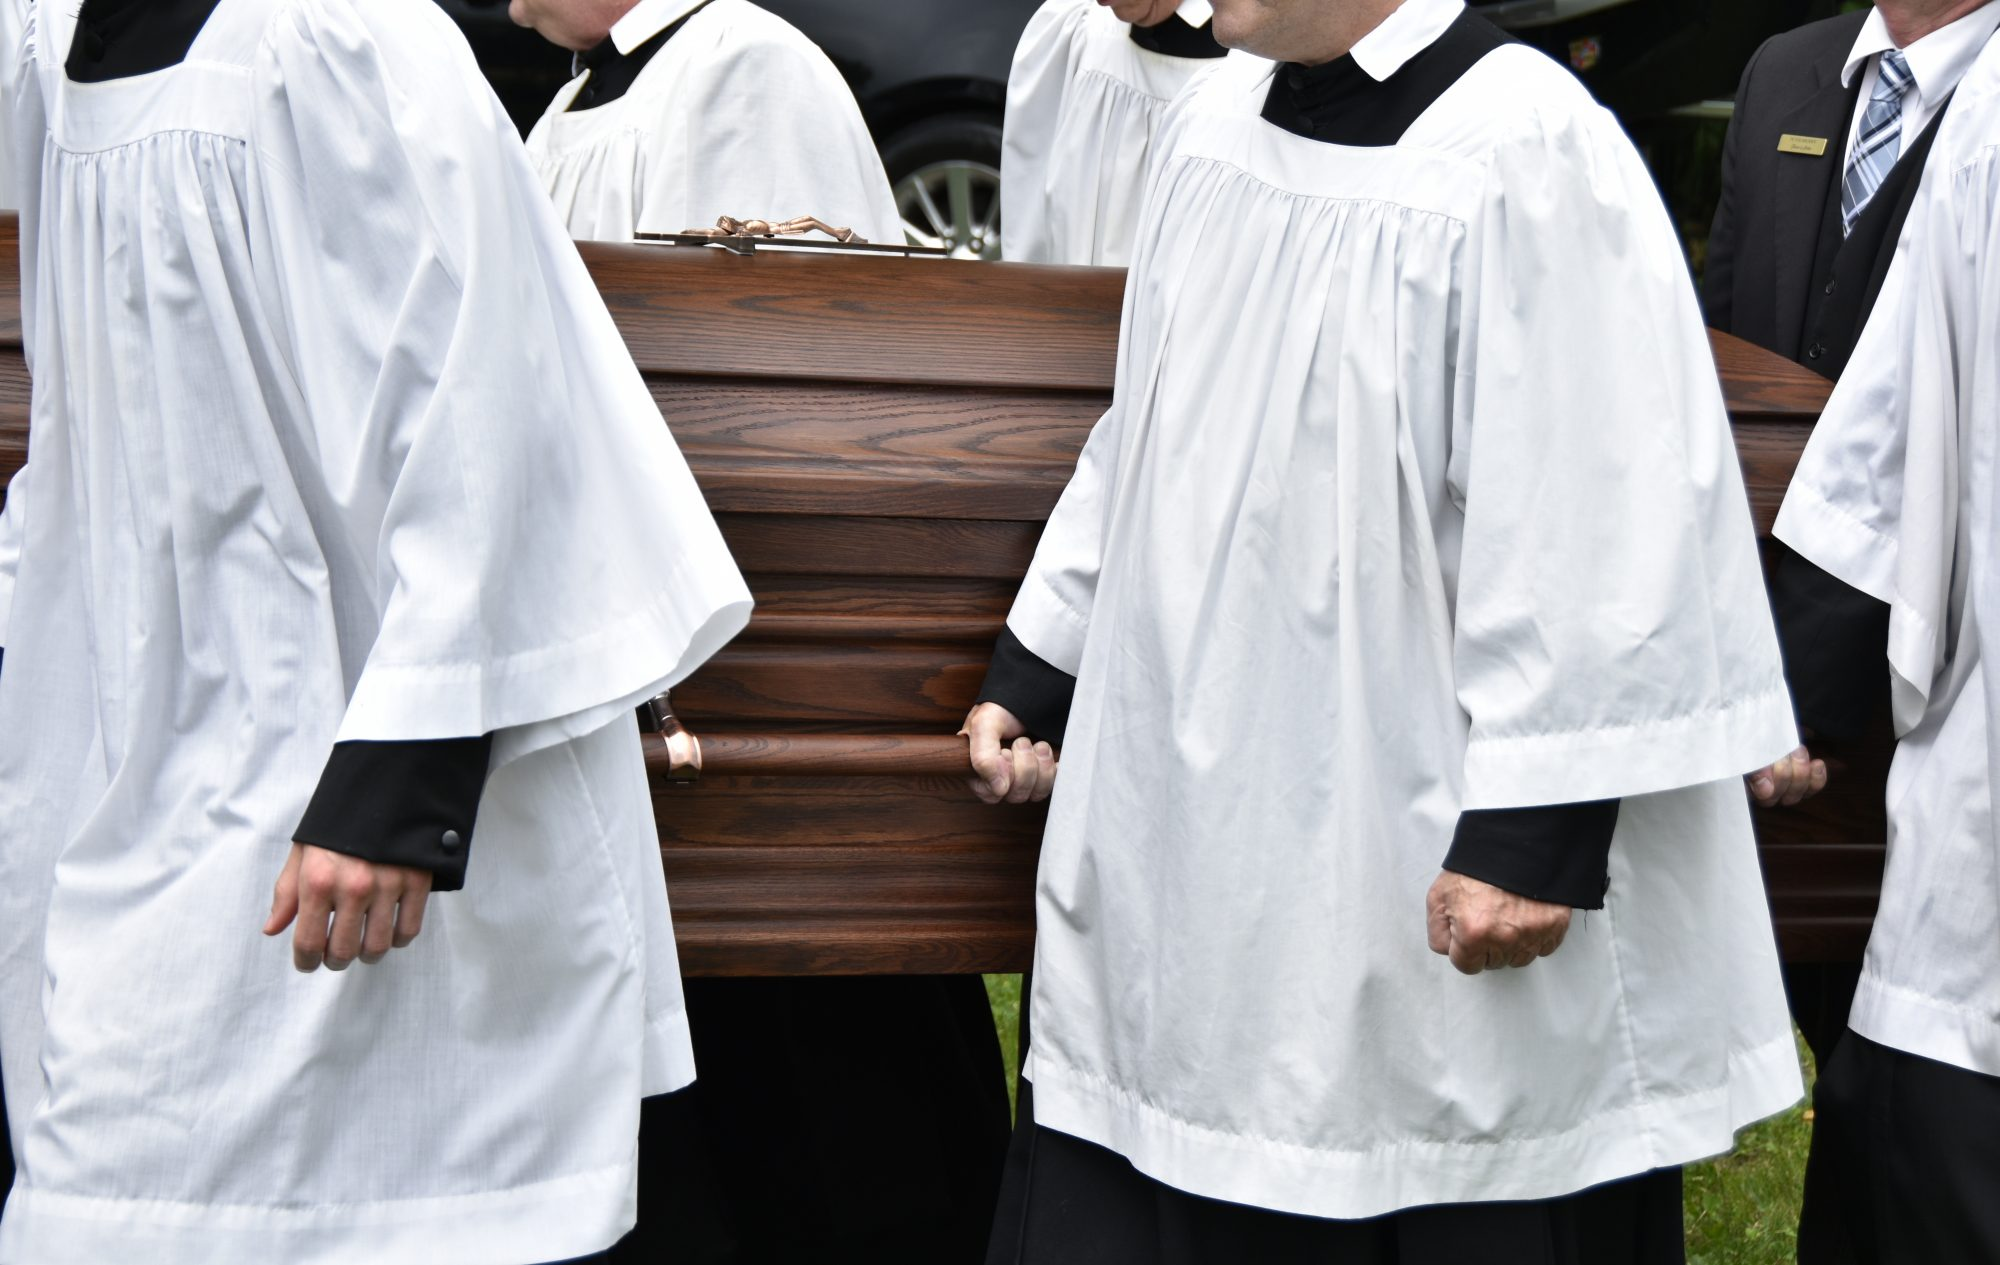 The Oratorian Fathers carry the casket at the burial